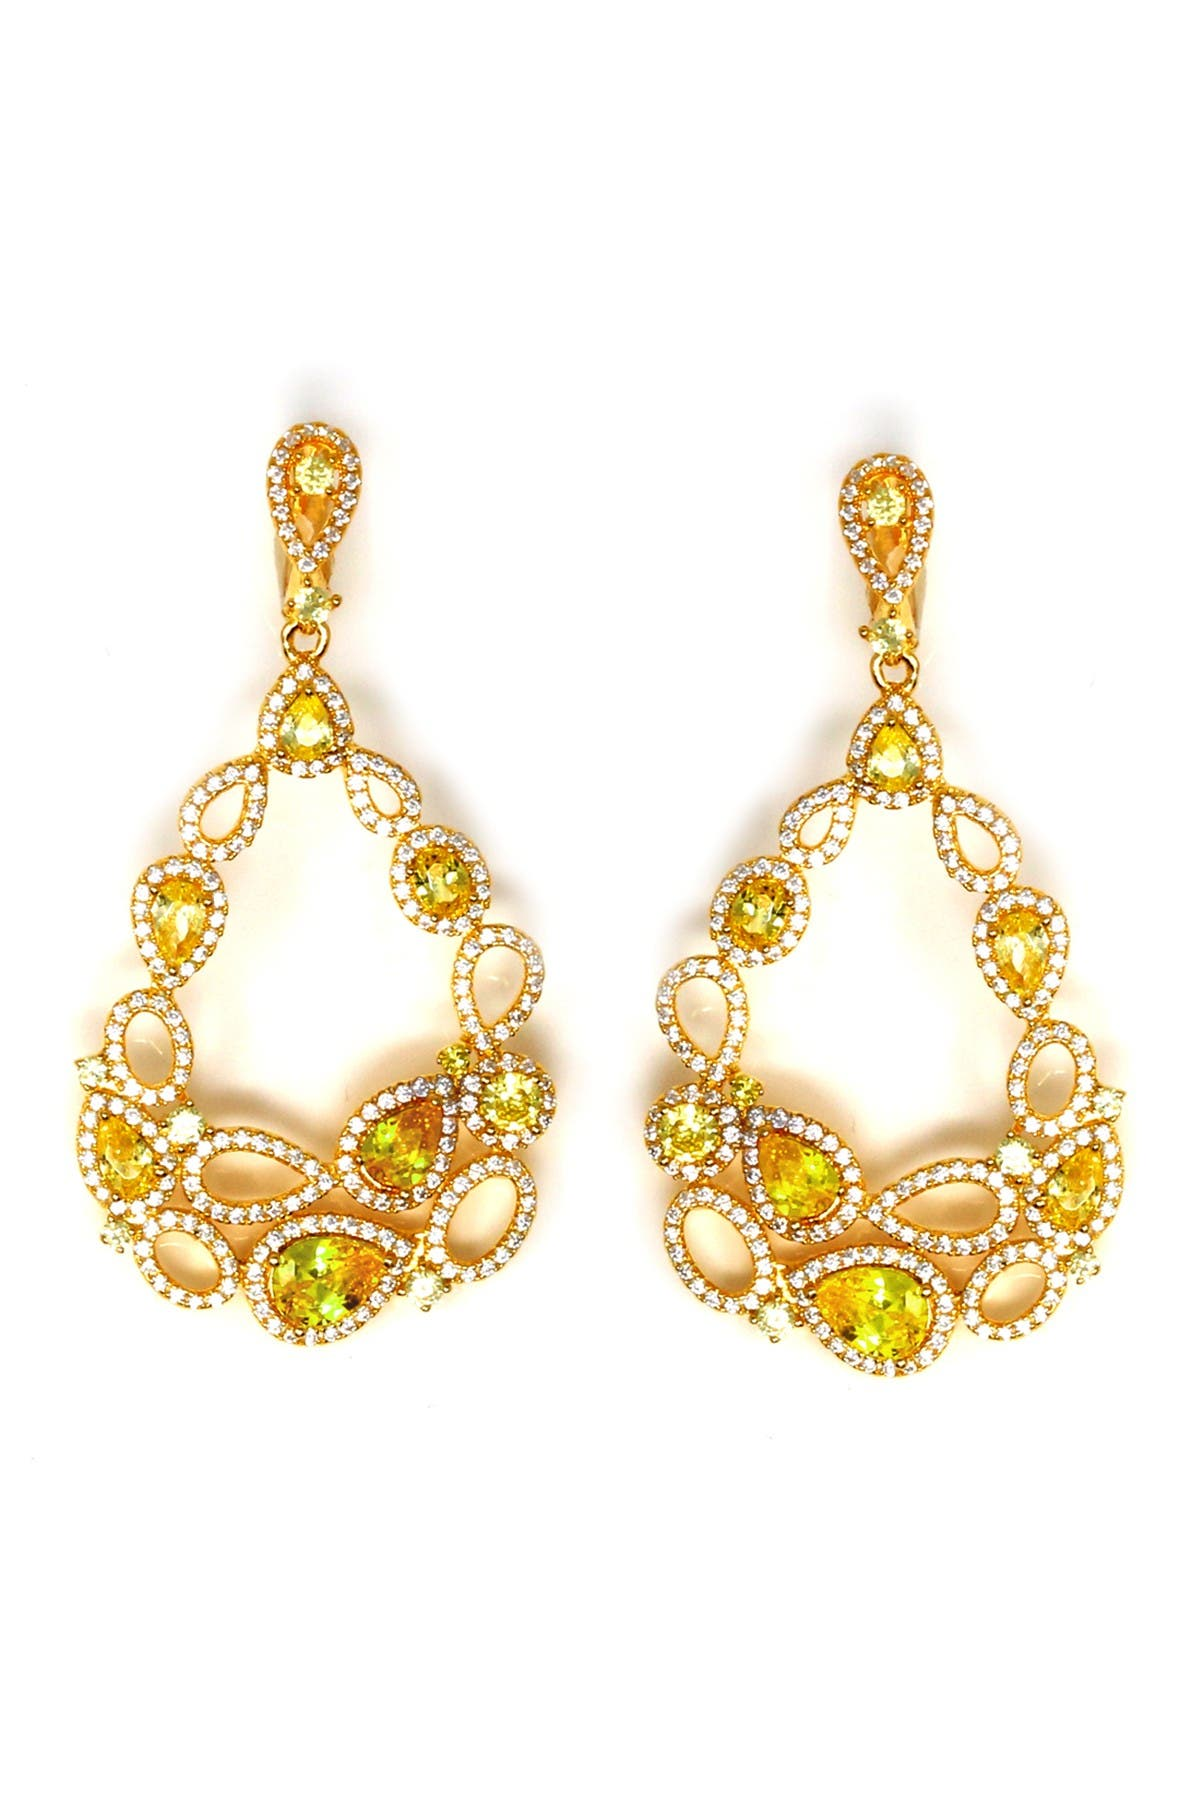 Image of Suzy Levian Yellow Rhodium Plated Sterling Silver Chandelier Cubic Zirconia Drop Earrings